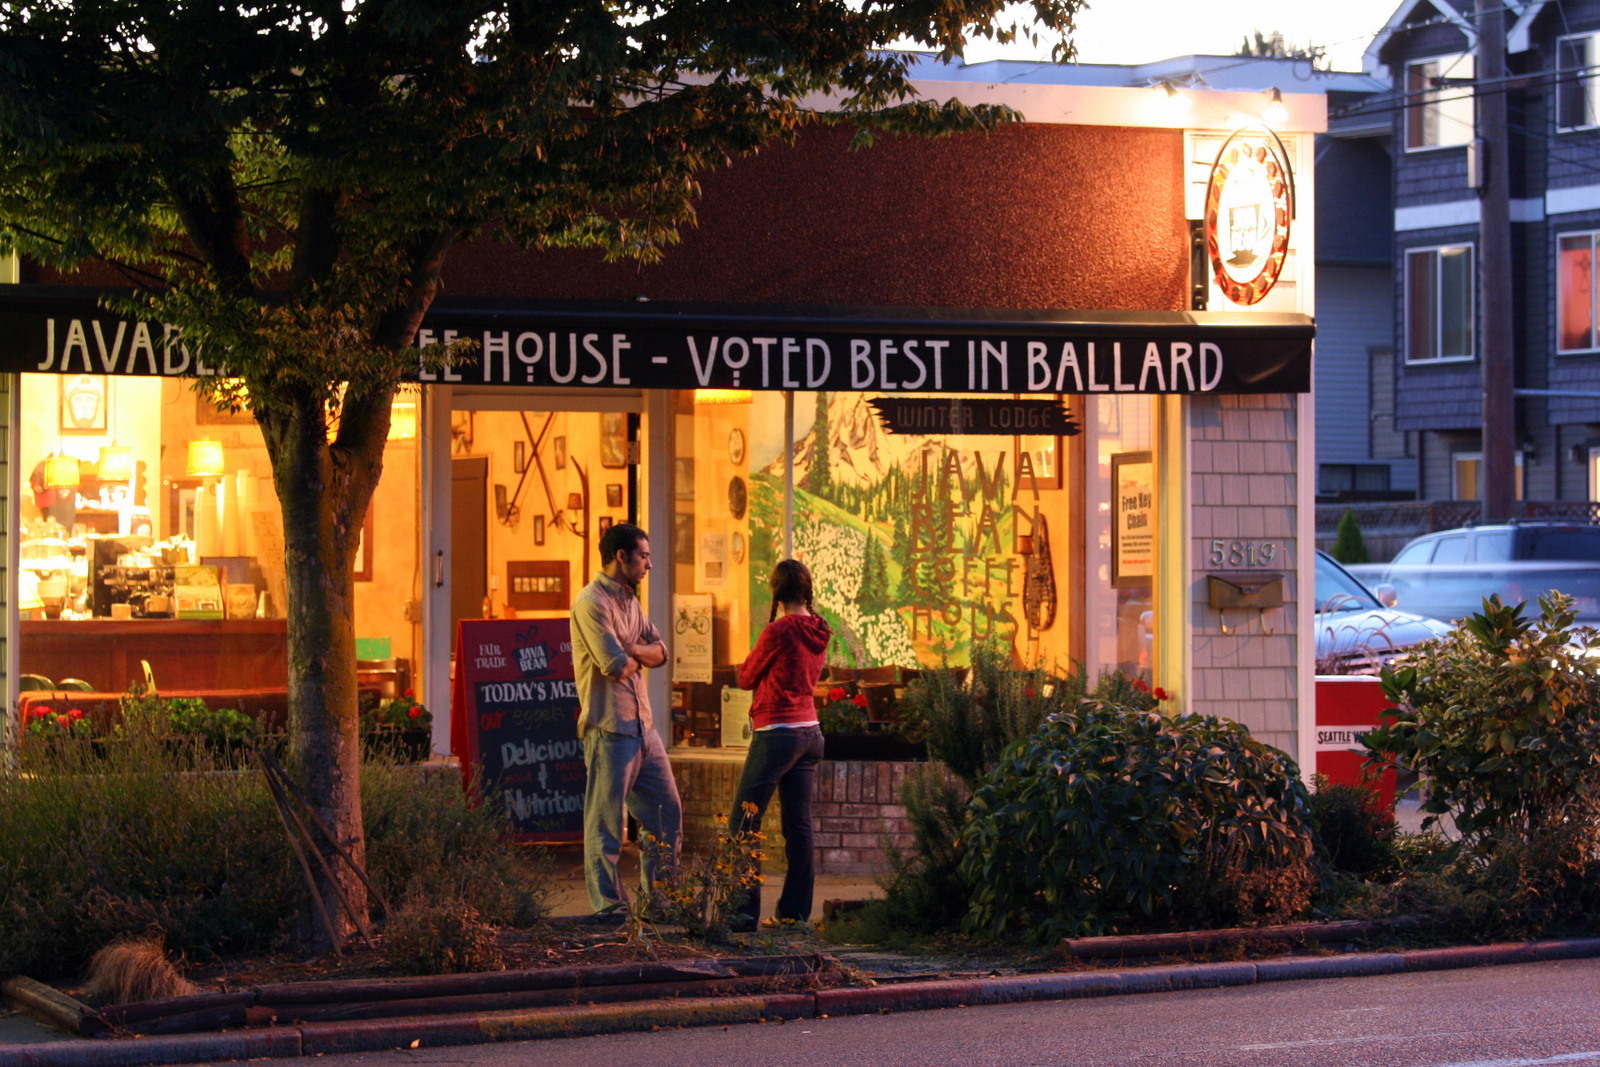 Voted Best in Ballard